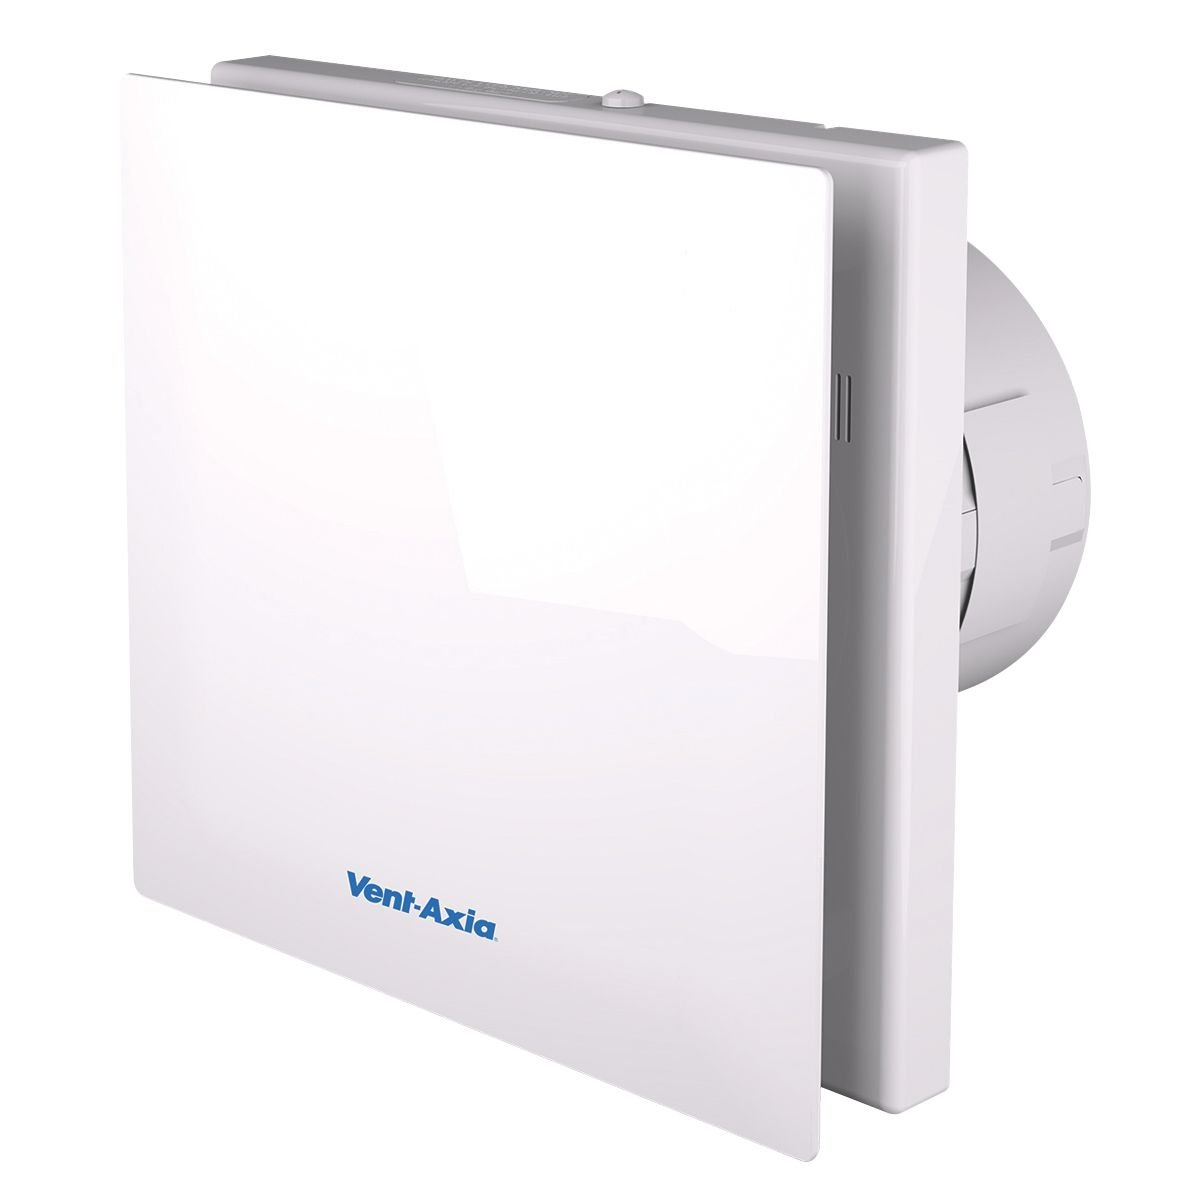 Vent-Axia VASF100B 4.3W Silent Axial Bathroom Extractor Fan